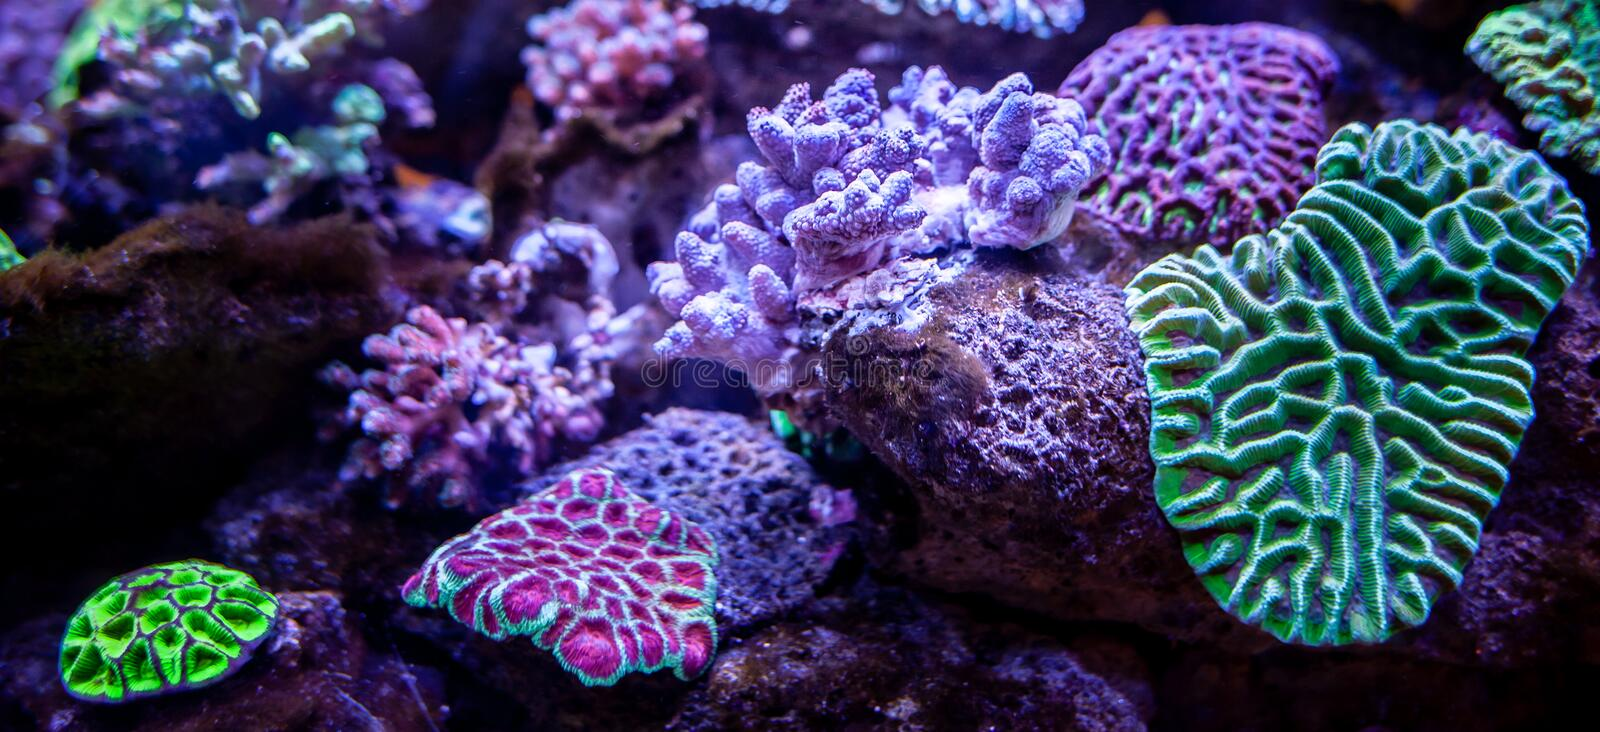 Underwater coral reef landscape background royalty free stock photos